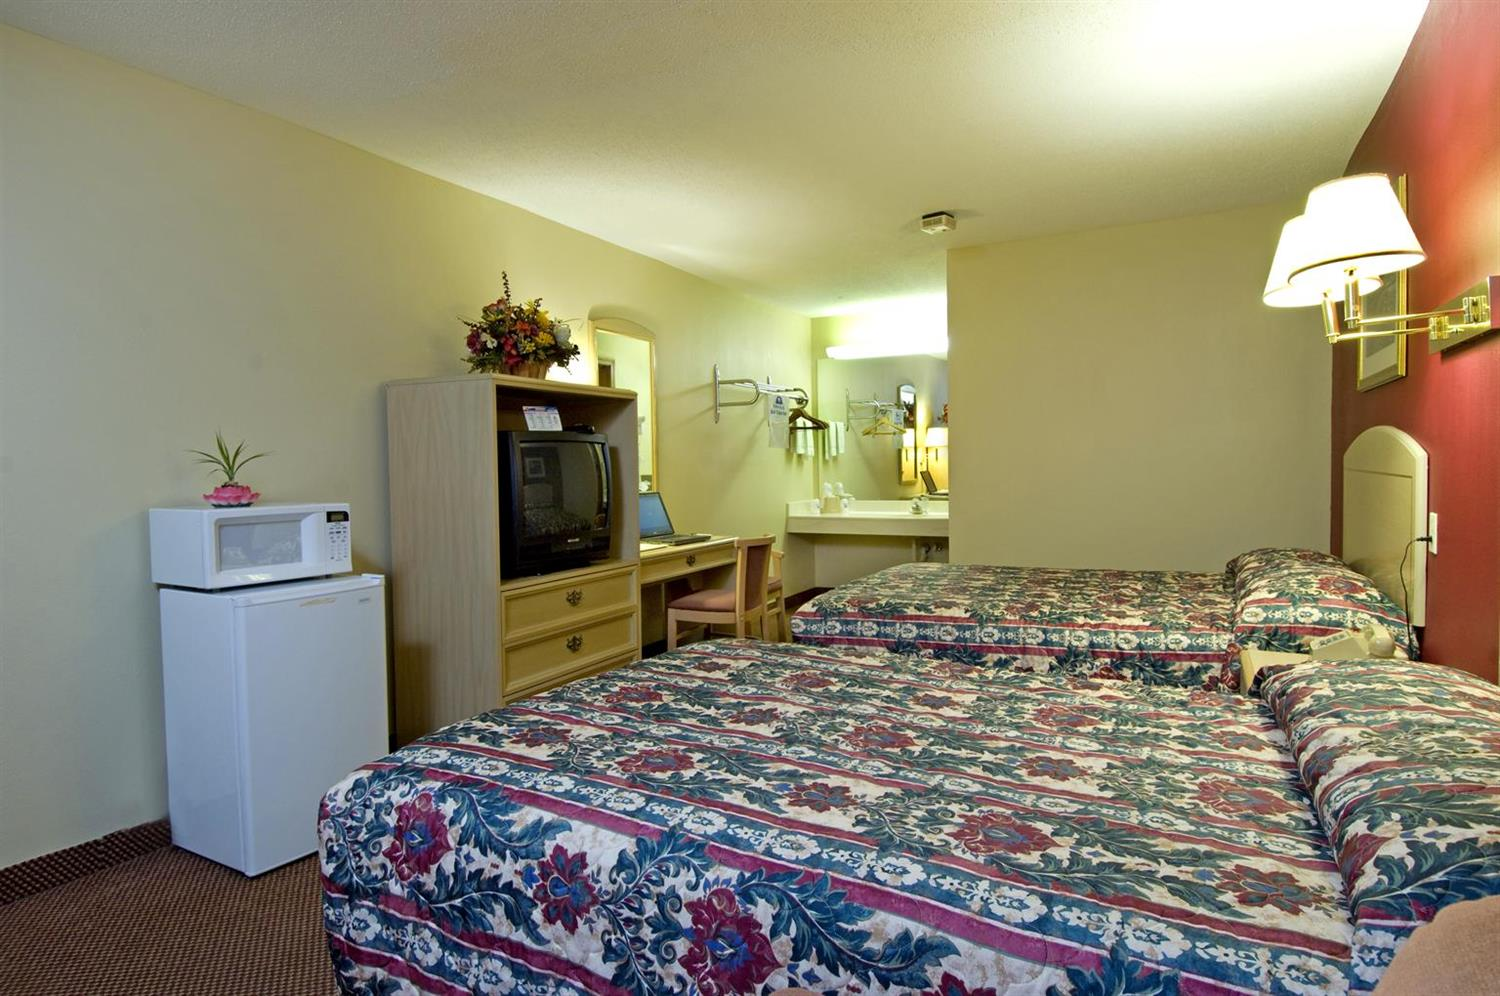 Hotels In Florence Ky With Smoking Rooms